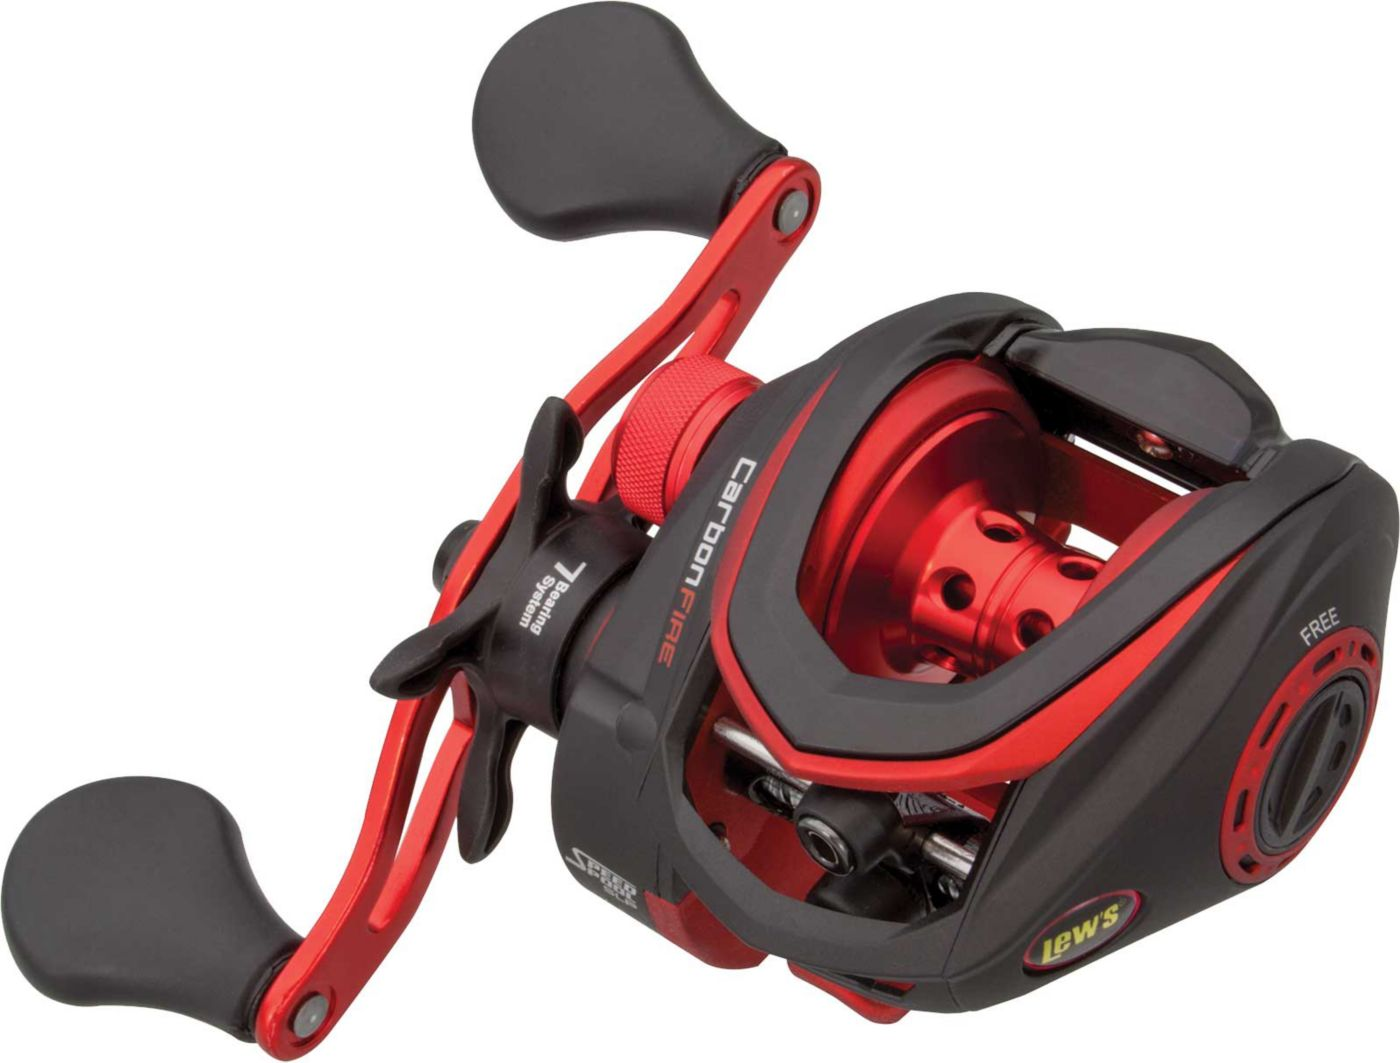 Lew's Carbon Fire Speed Spool Baitcasting Reel